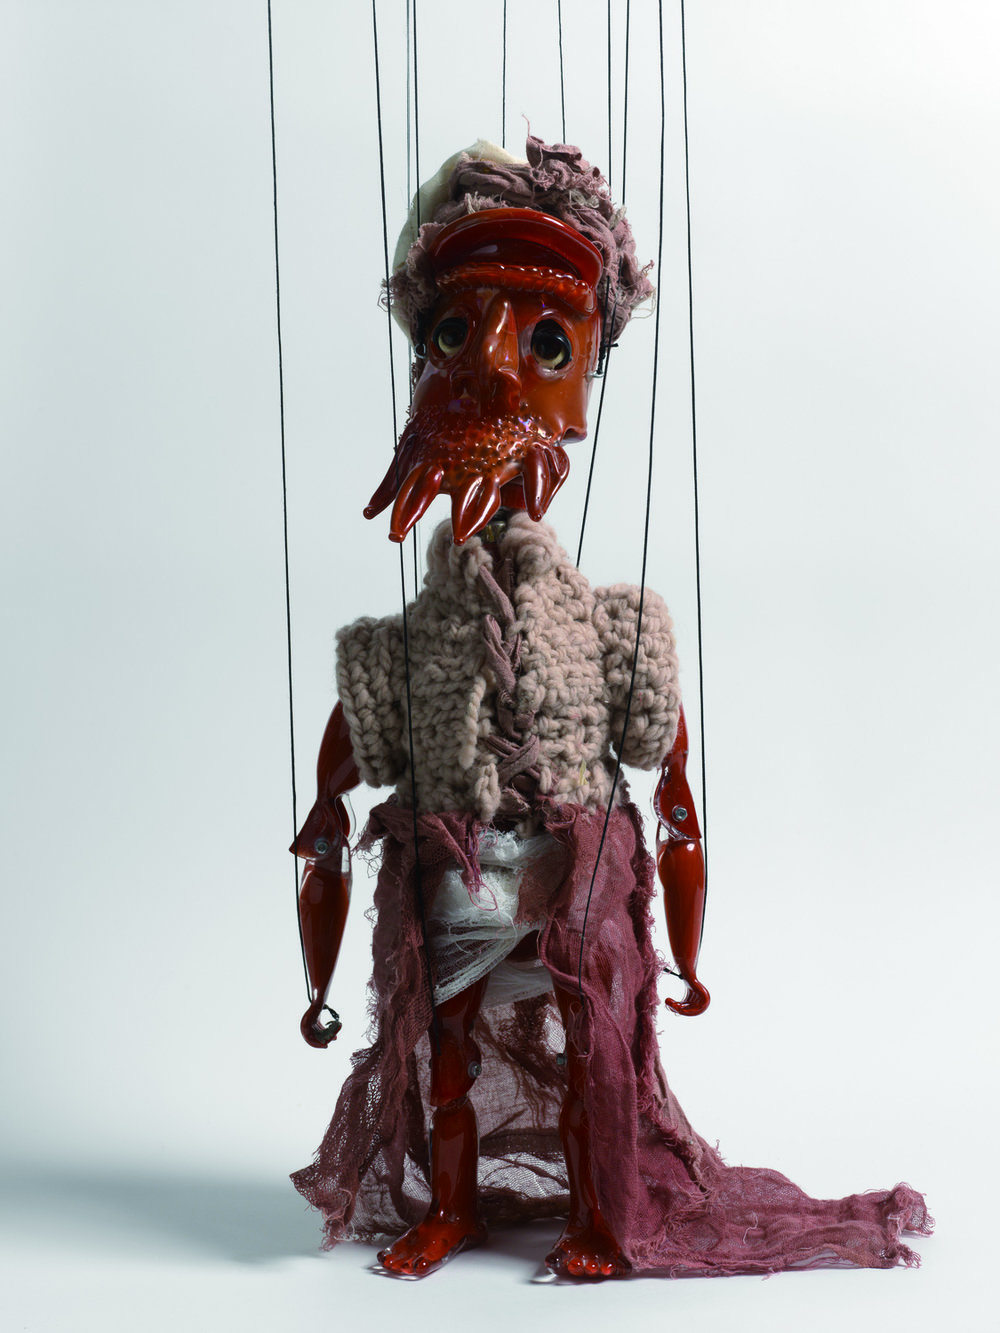 Wael Shawky, Cabaret Crusades: The Secrets of Karbalaa(Marionette), 2015  © Wael Shawky; Courtesy Lisson Gallery